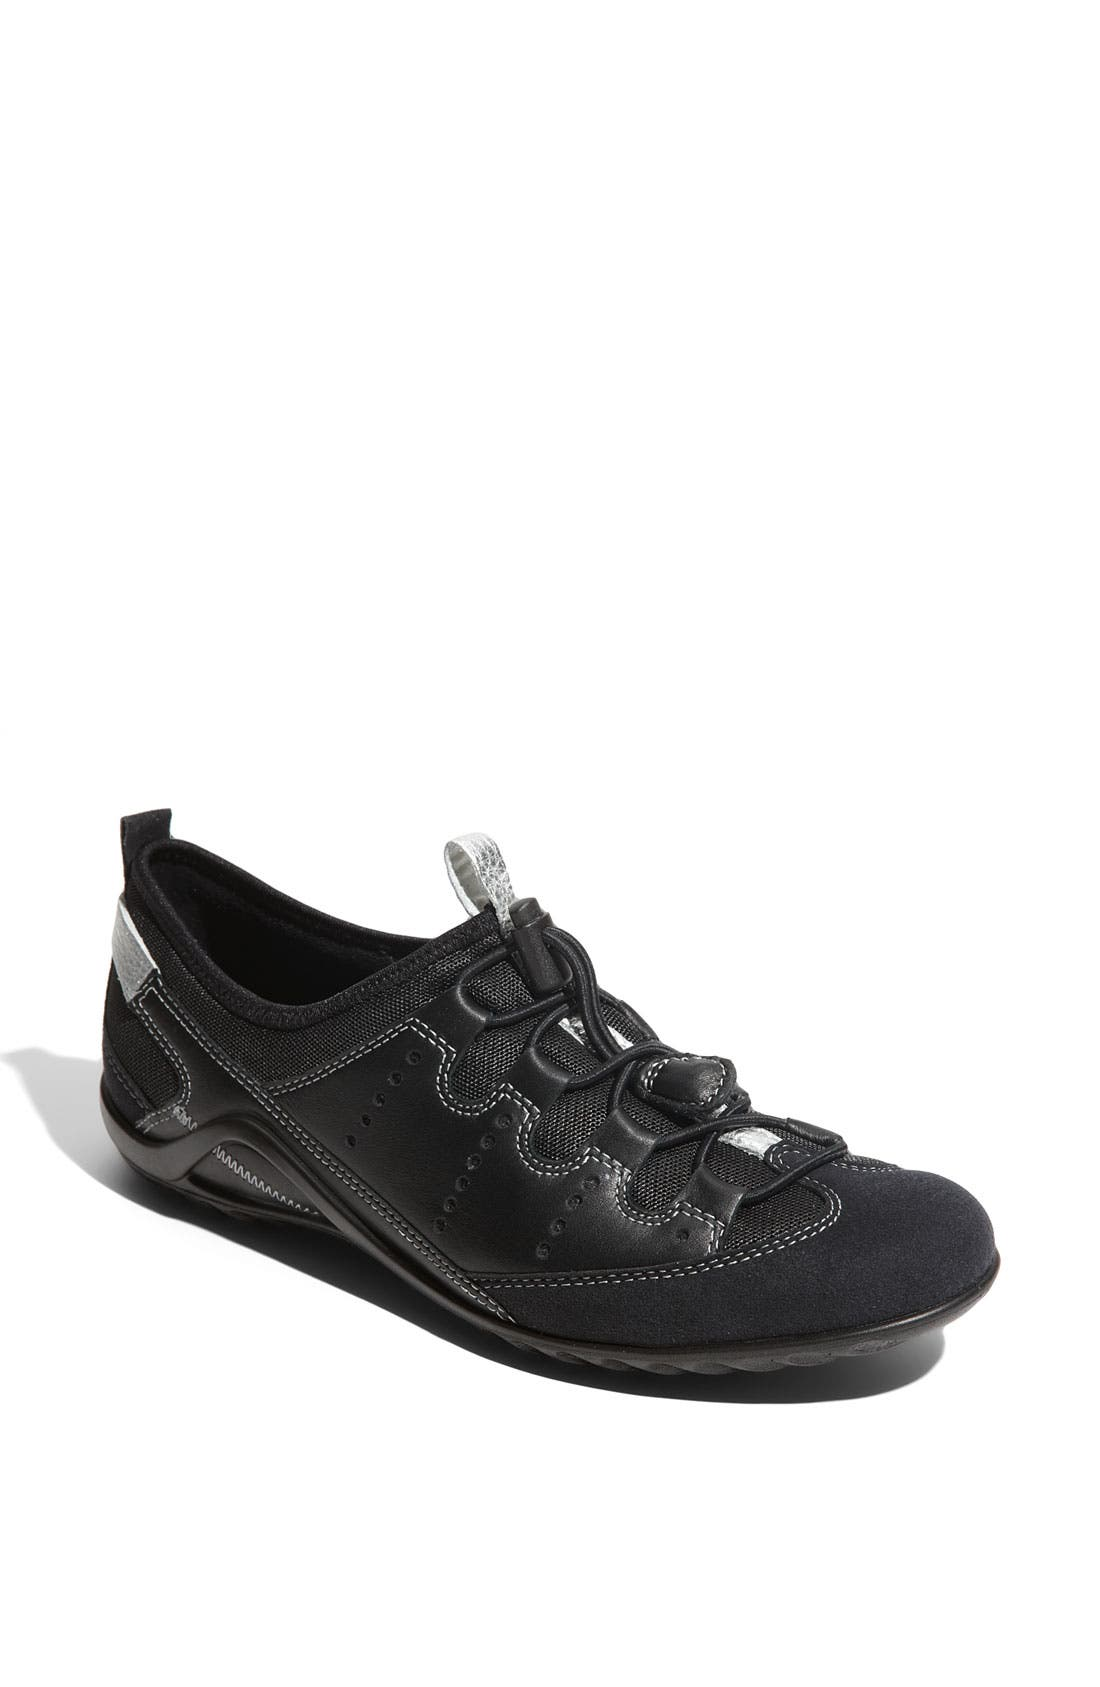 Alternate Image 1 Selected - ECCO 'Vibration II' Toggle Sneaker